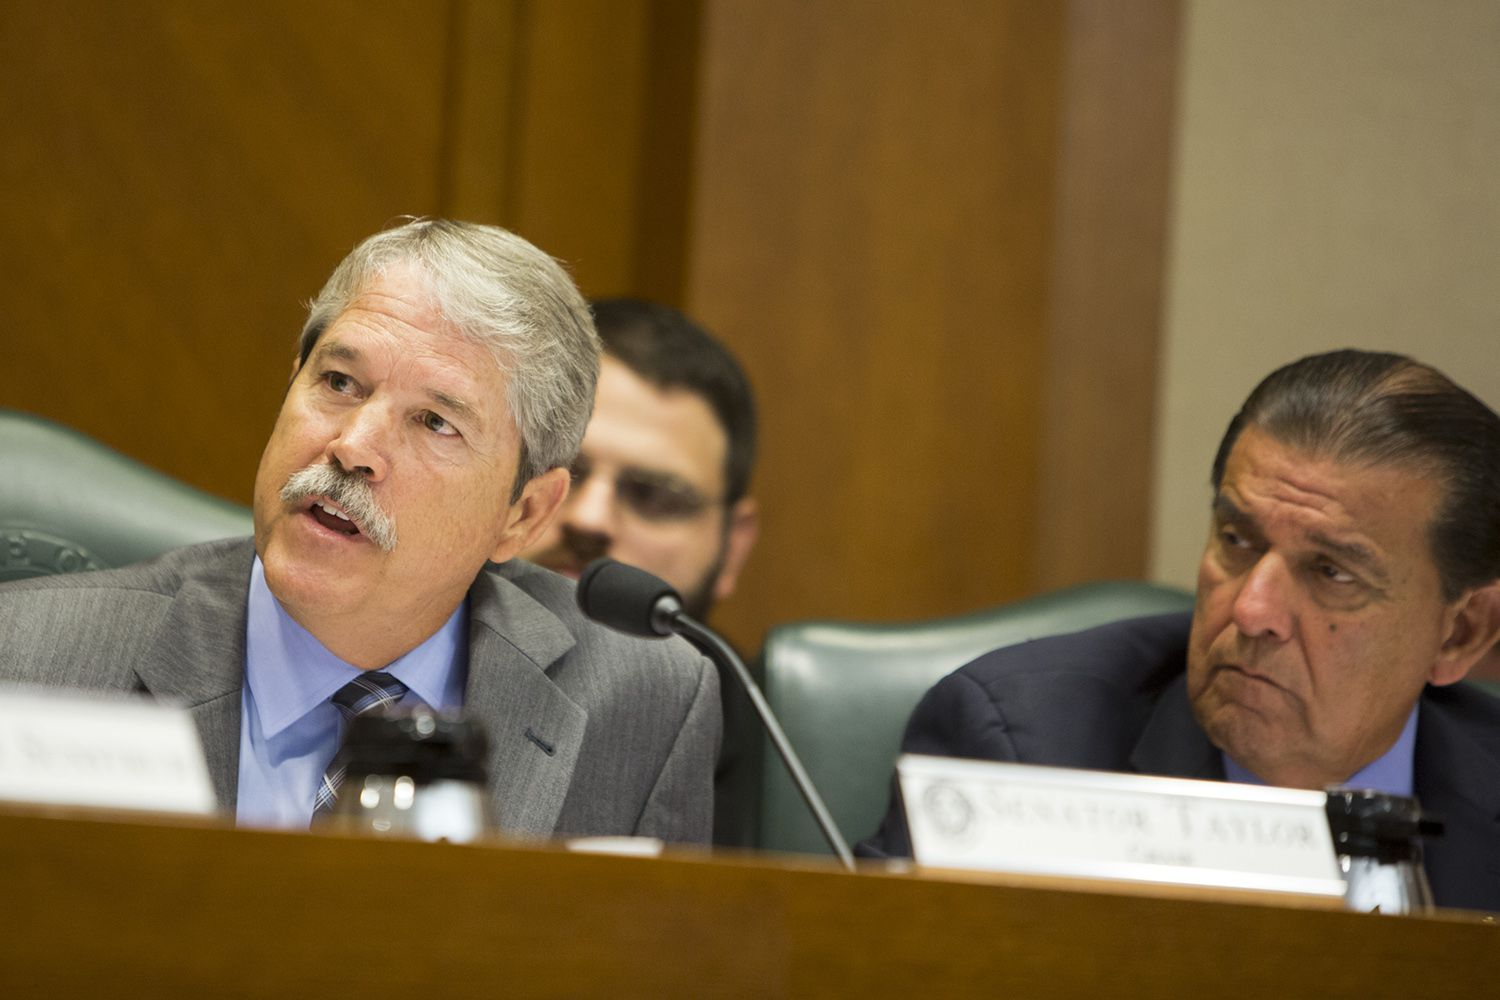 State Sen. Larry Taylor, R-Friendswood, during a July 21, 2017 Senate Public Education Committee hearing. Sen. Eddie Lucio Jr., D-Brownsville, is seated to his left.